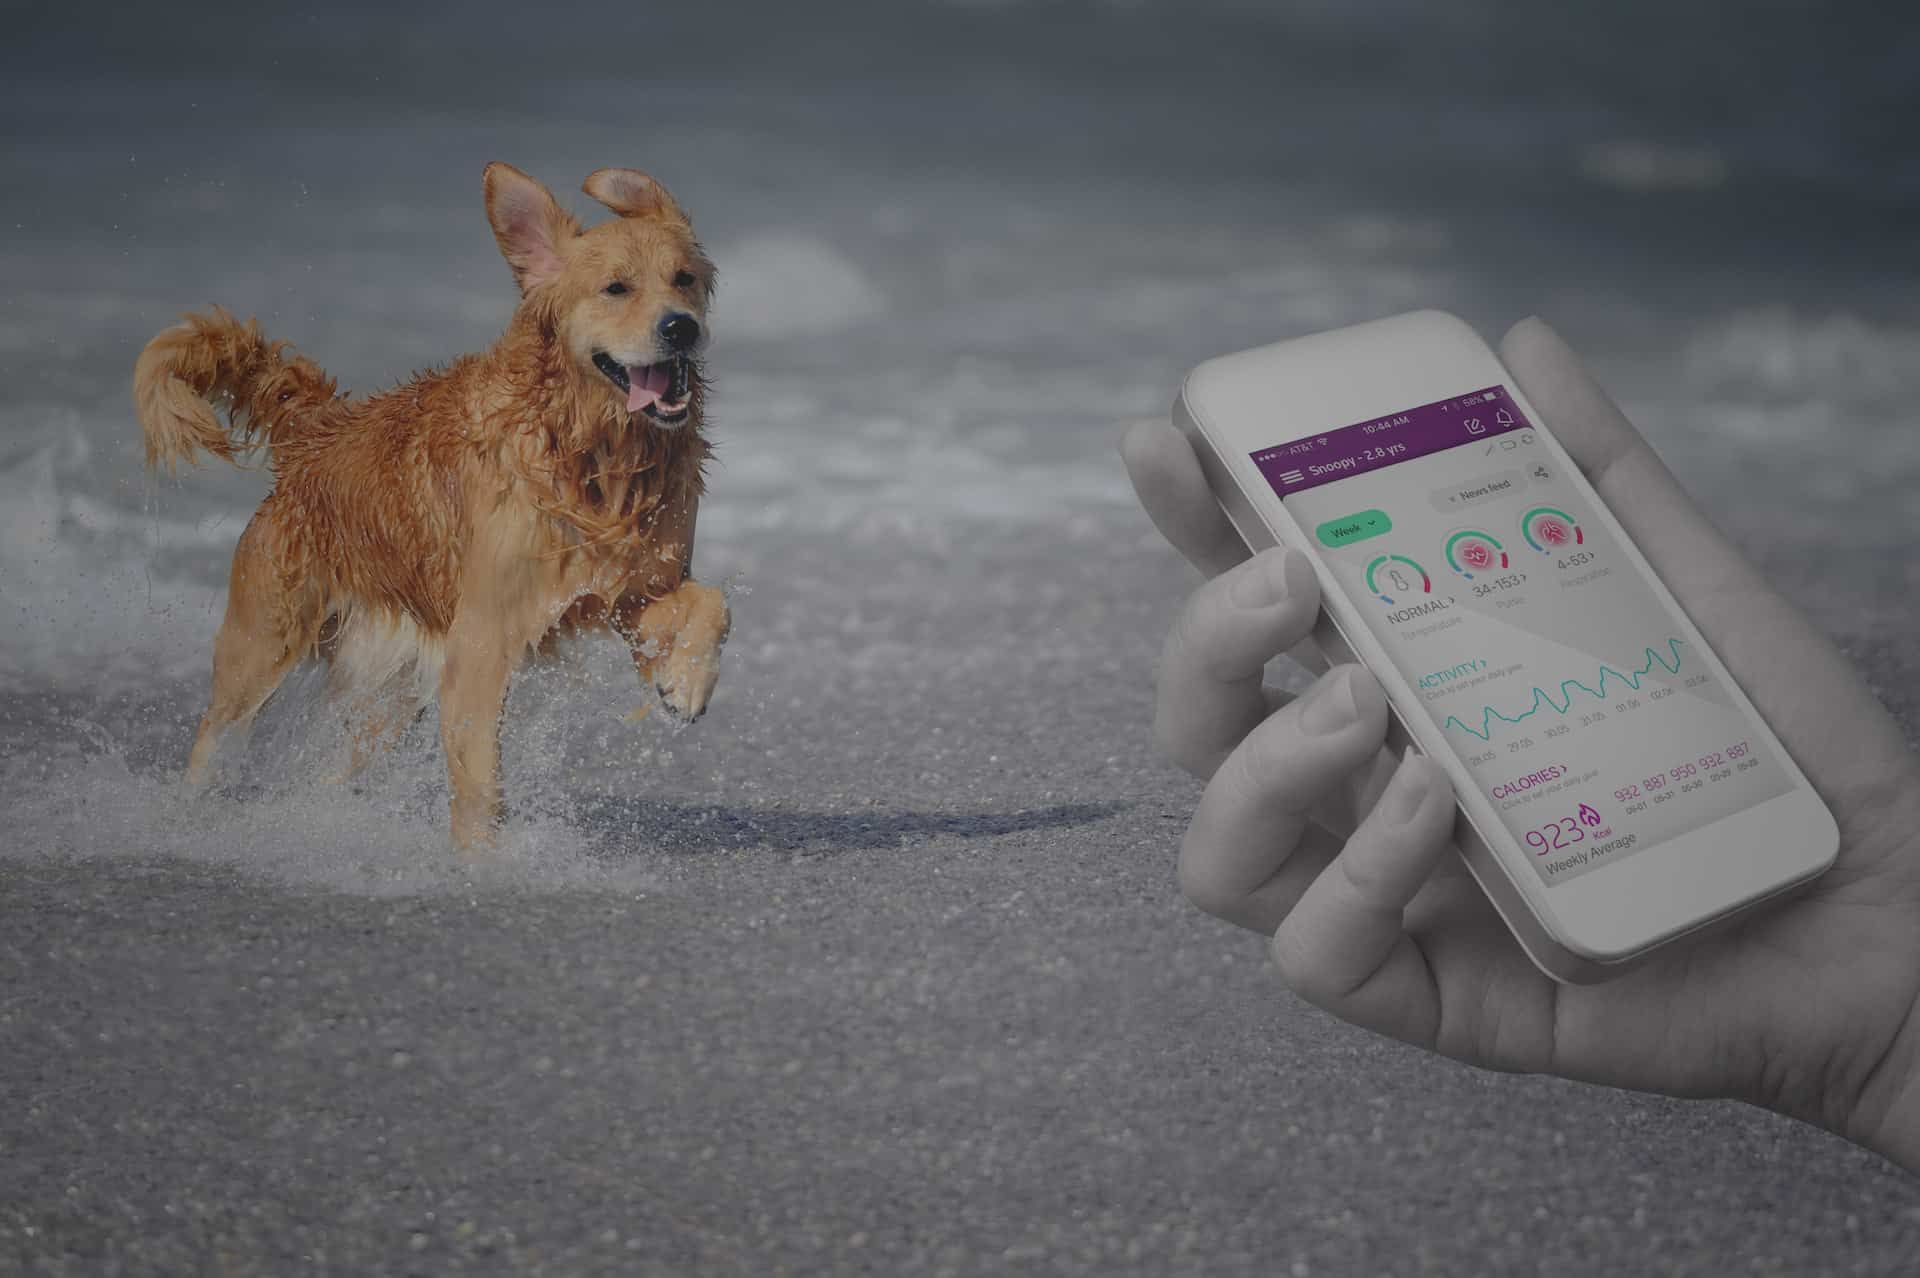 Choose a Health Monitoring Service Plan for PetPace's